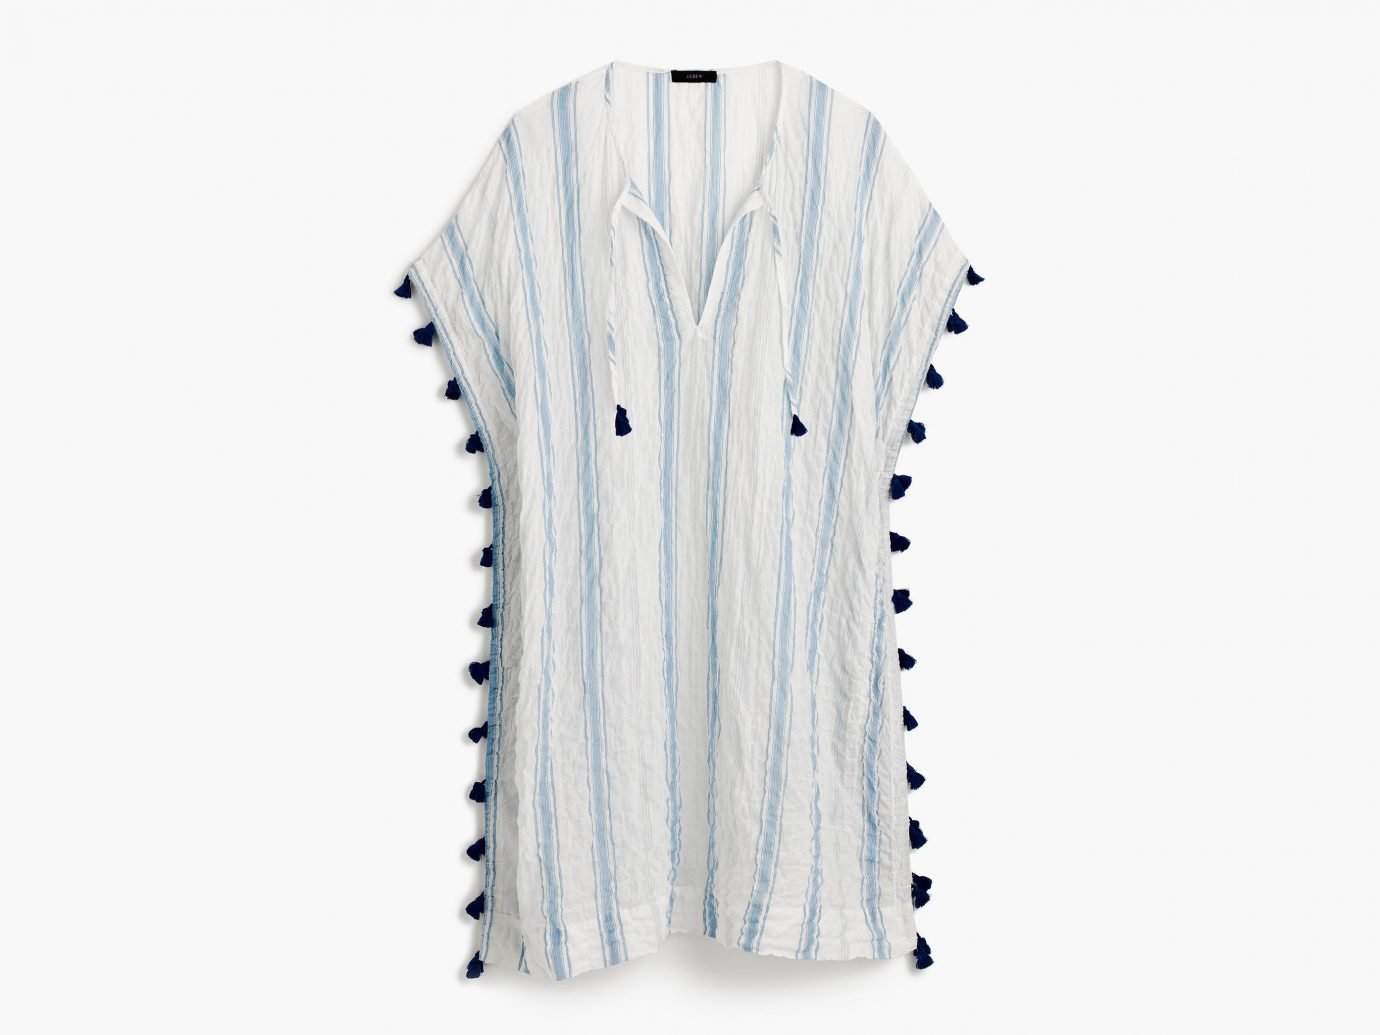 Cruise Travel Style + Design clothing sleeve outerwear product pattern sweater textile shirt